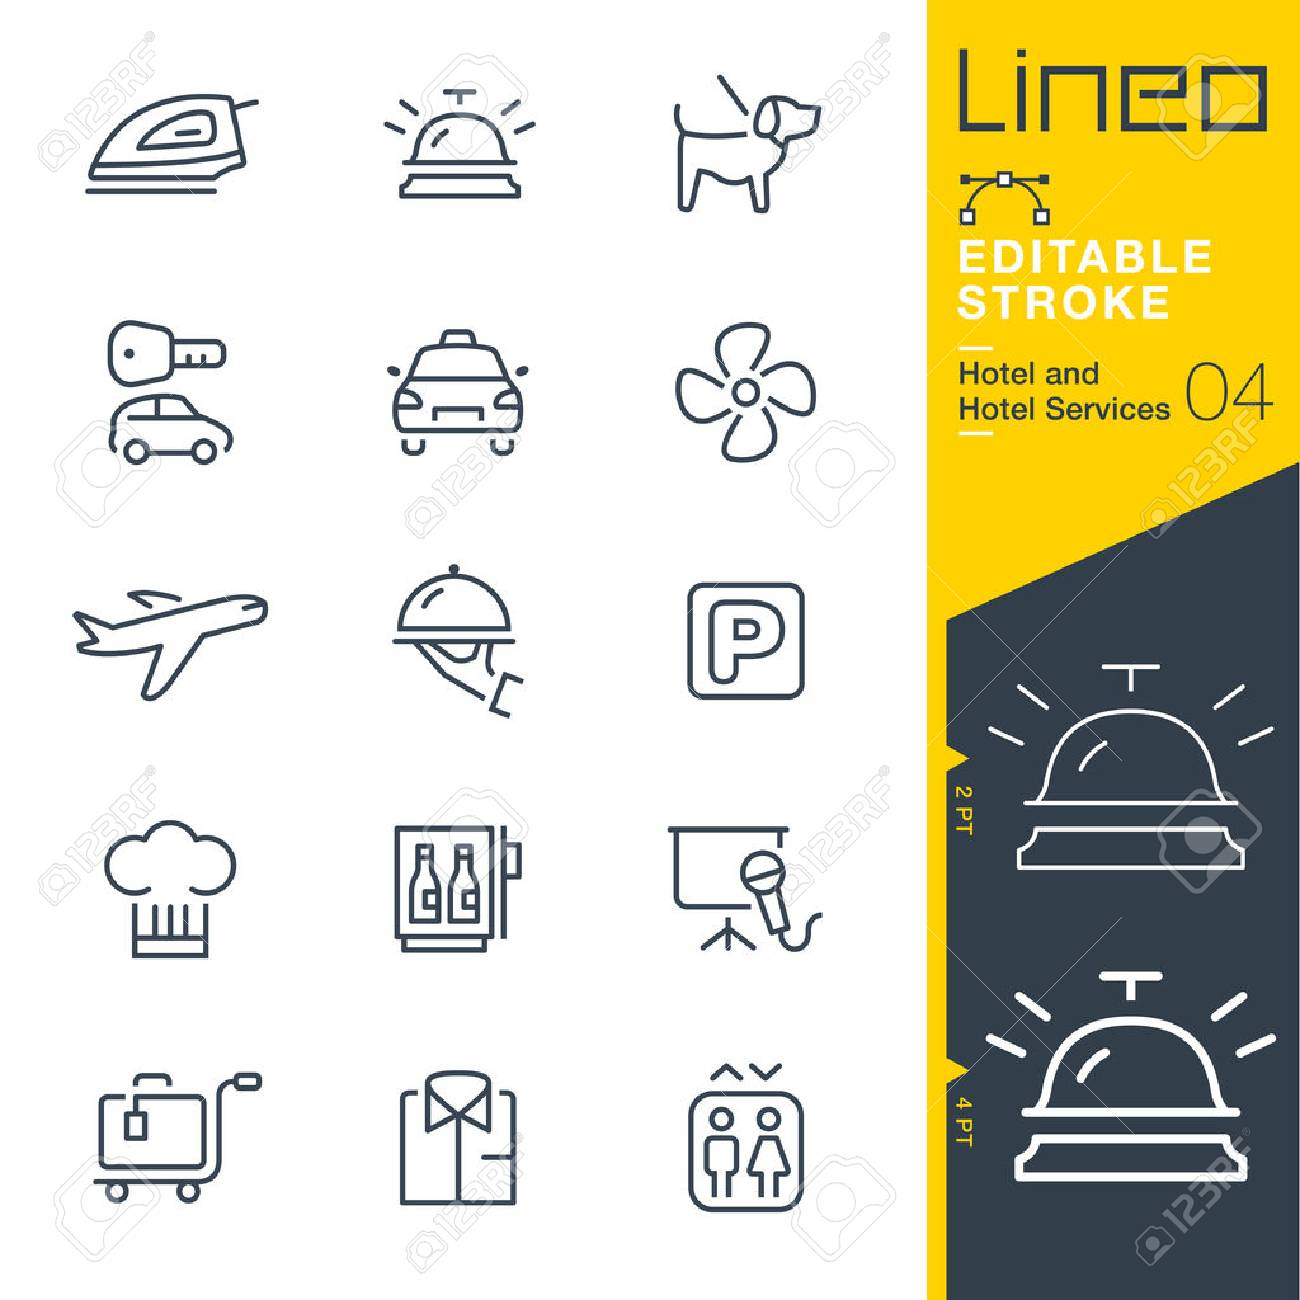 Lineo Editable Stroke - Hotel line icon Vector Icons - Adjust stroke weight - Change to any color - 80270262